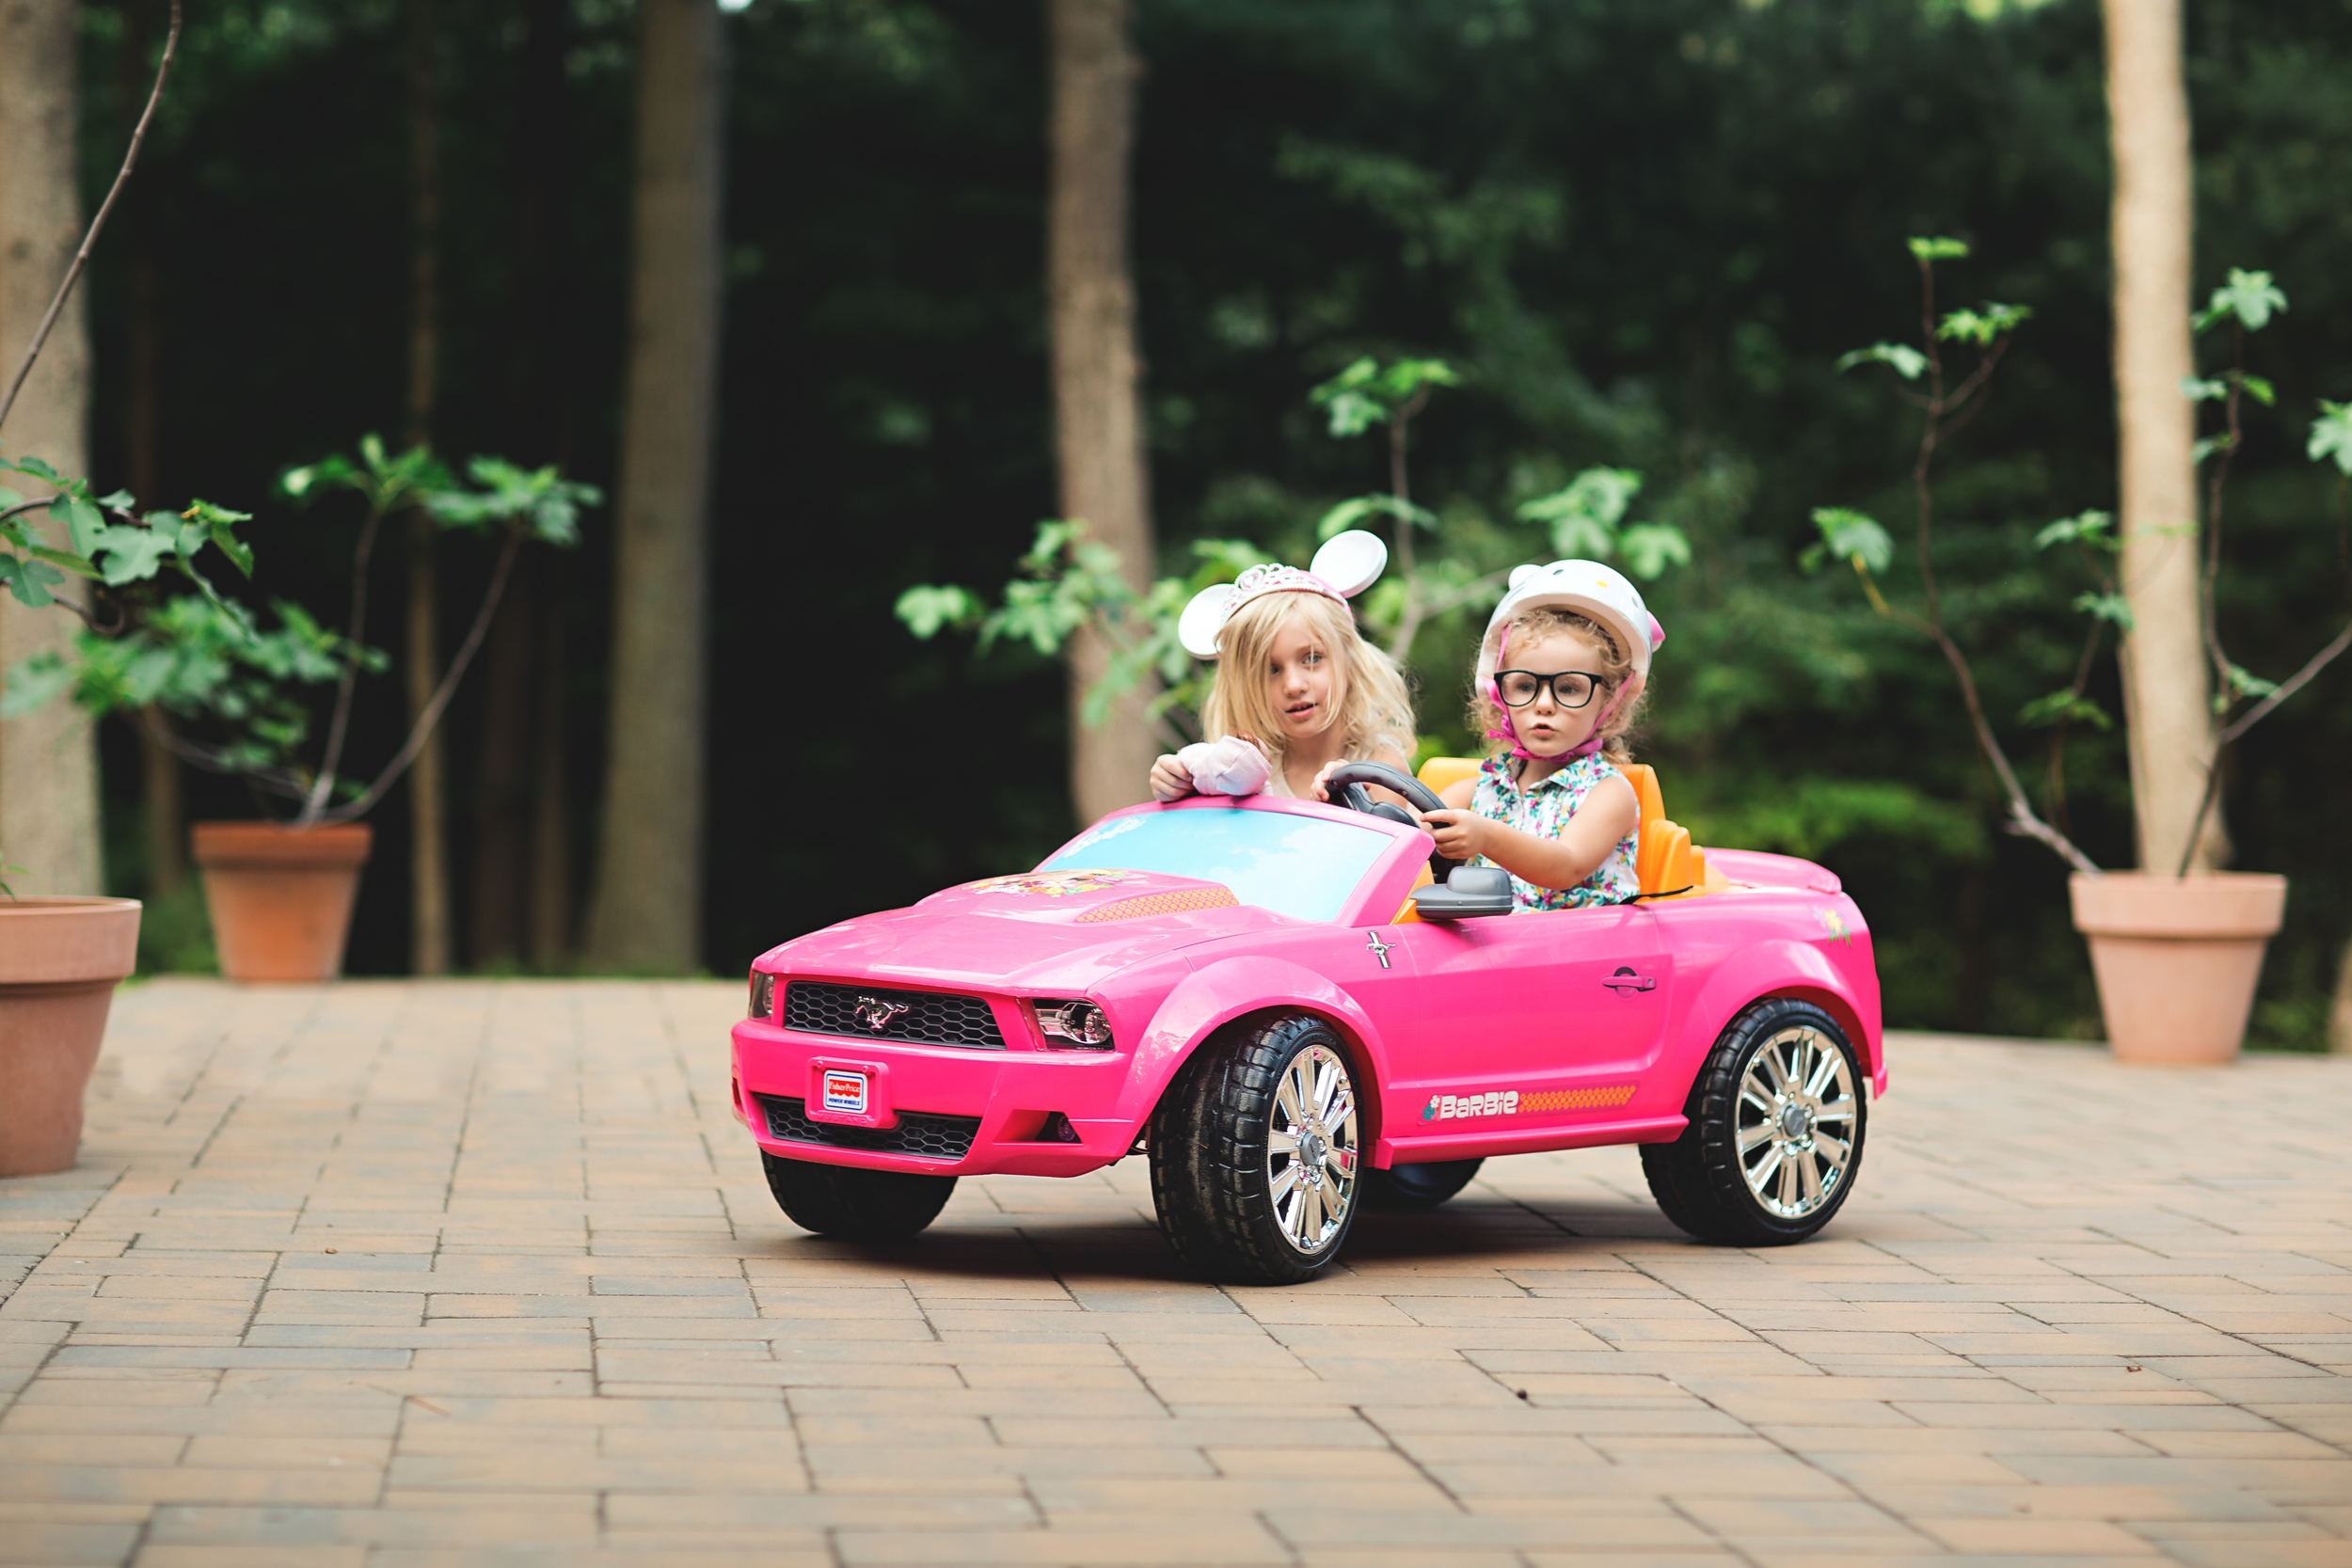 Long-island-photographer-hello-olivia-photography-family-child-dress-suffolk-sister-friends-car-lifstyle